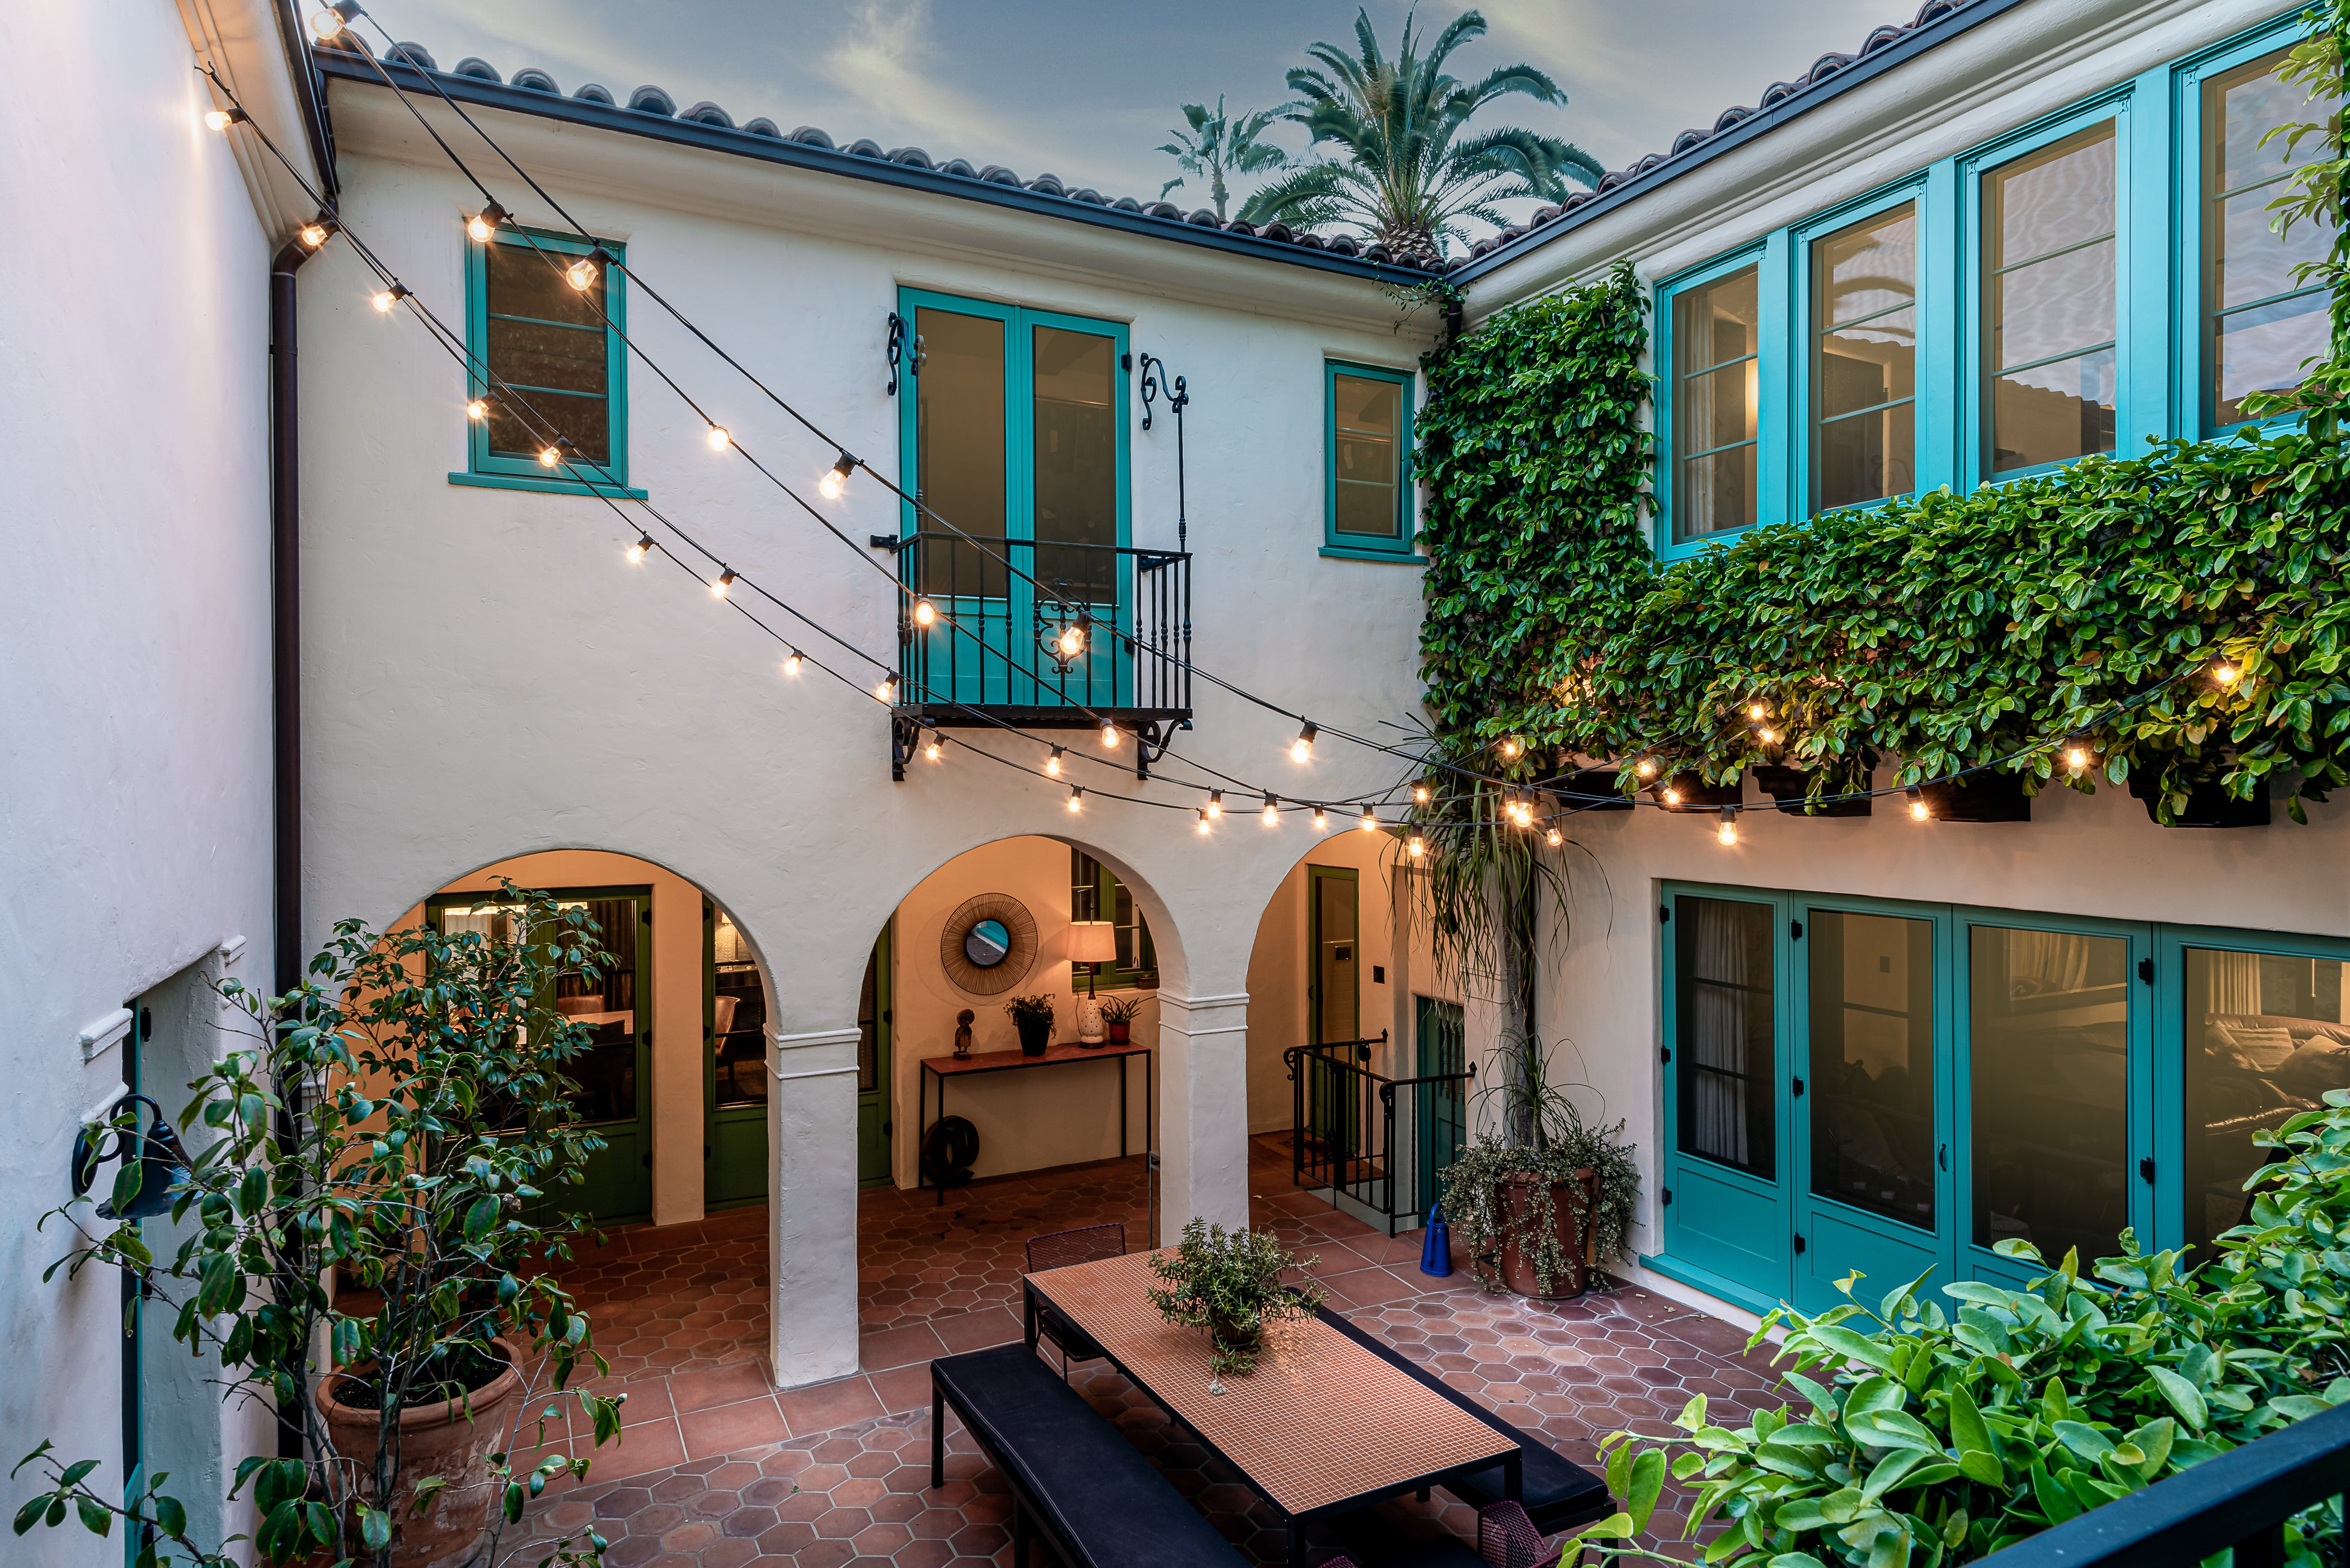 Courtyard of a Spanish Colonial-style home with aquamarine doors